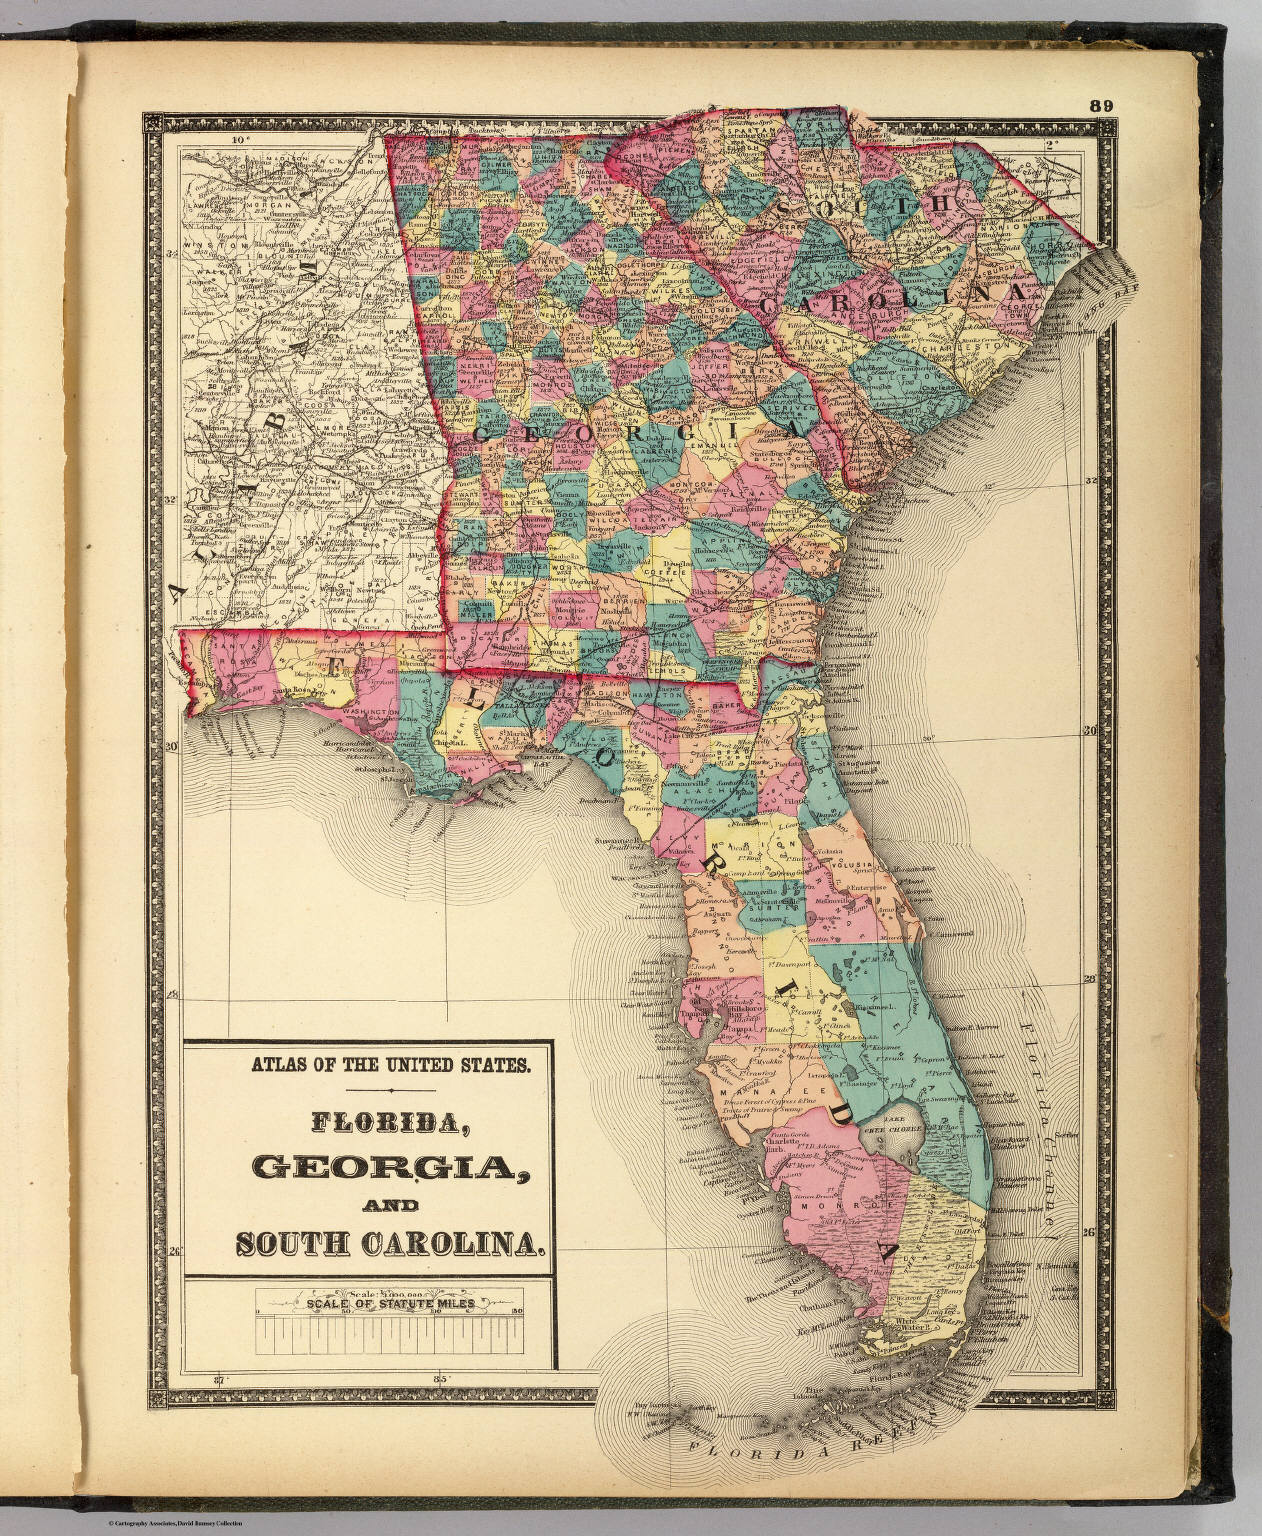 Florida And Georgia Map.Florida Georgia And South Carolina David Rumsey Historical Map